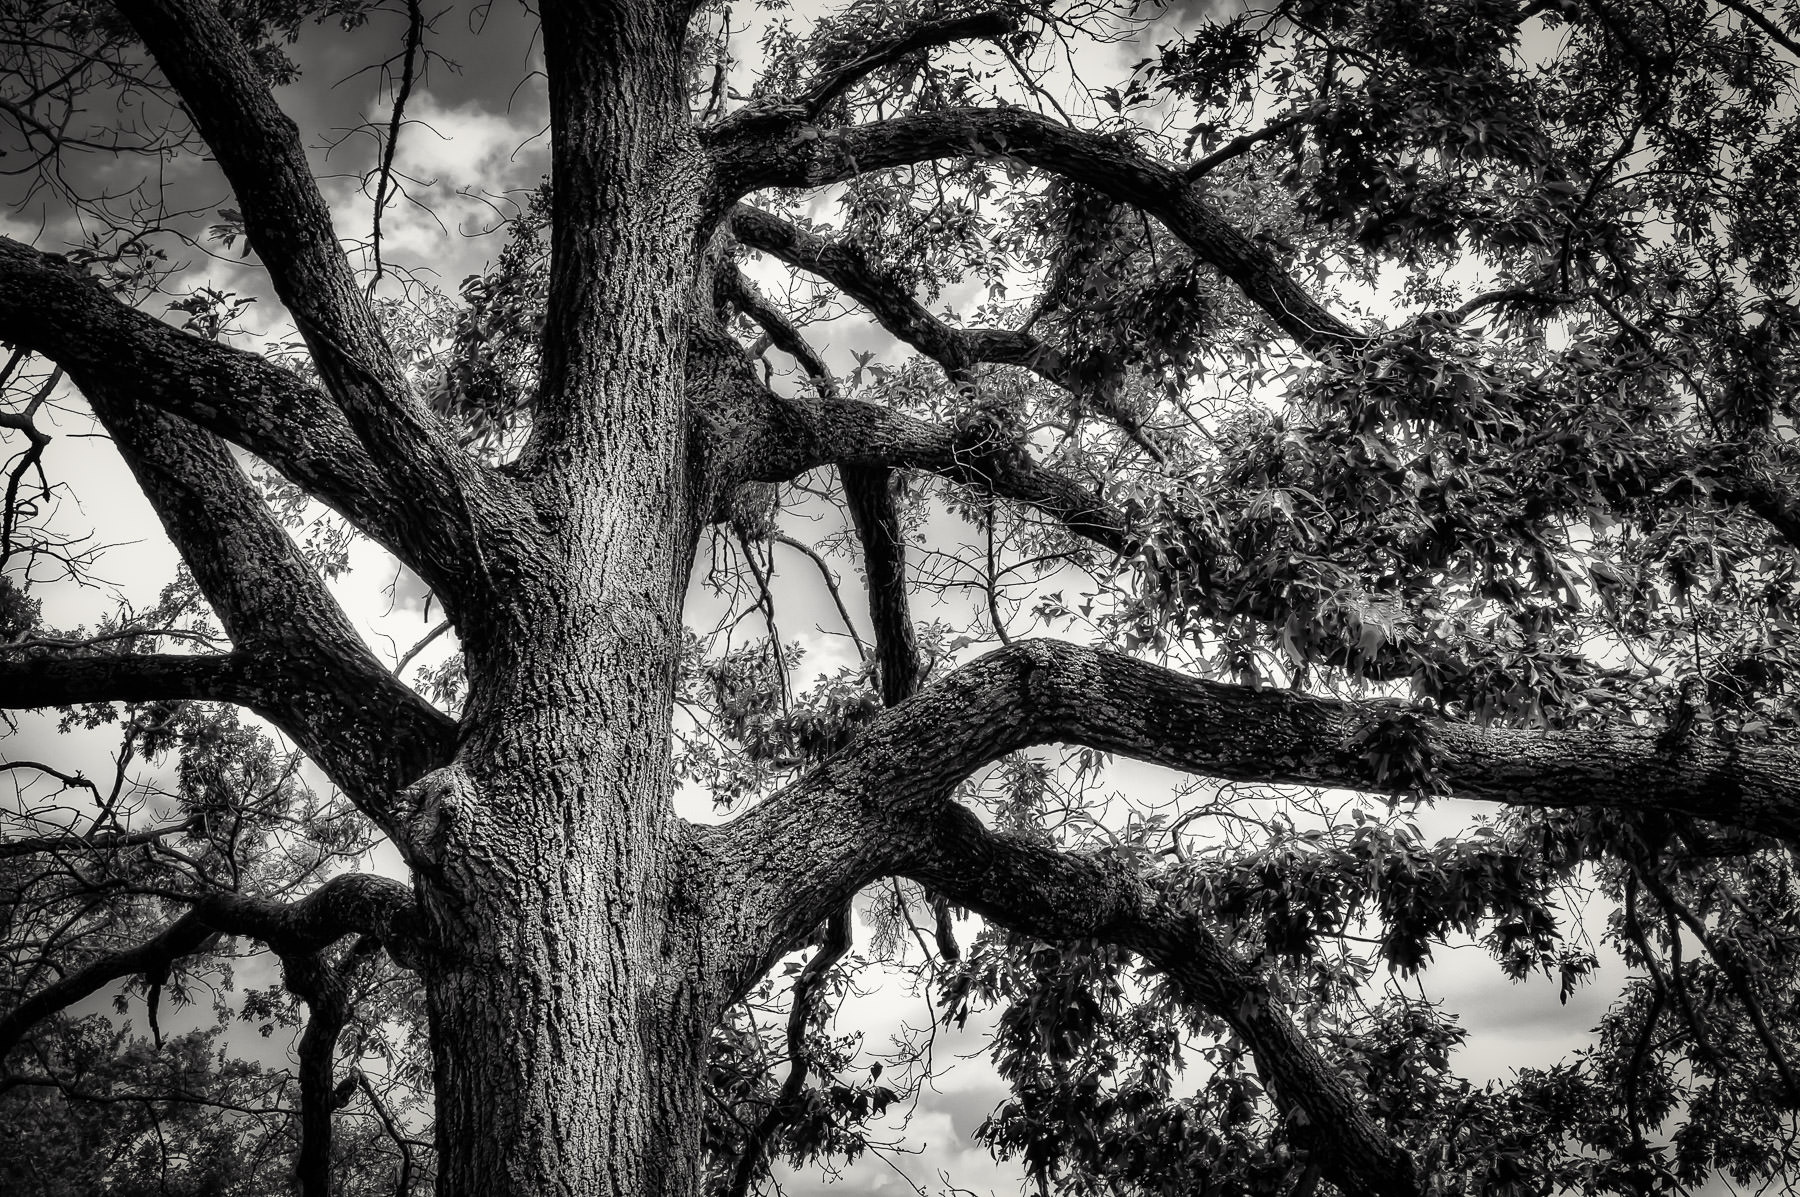 Detail of a large tree and its branching trunk found at Tyler State Park, Texas.